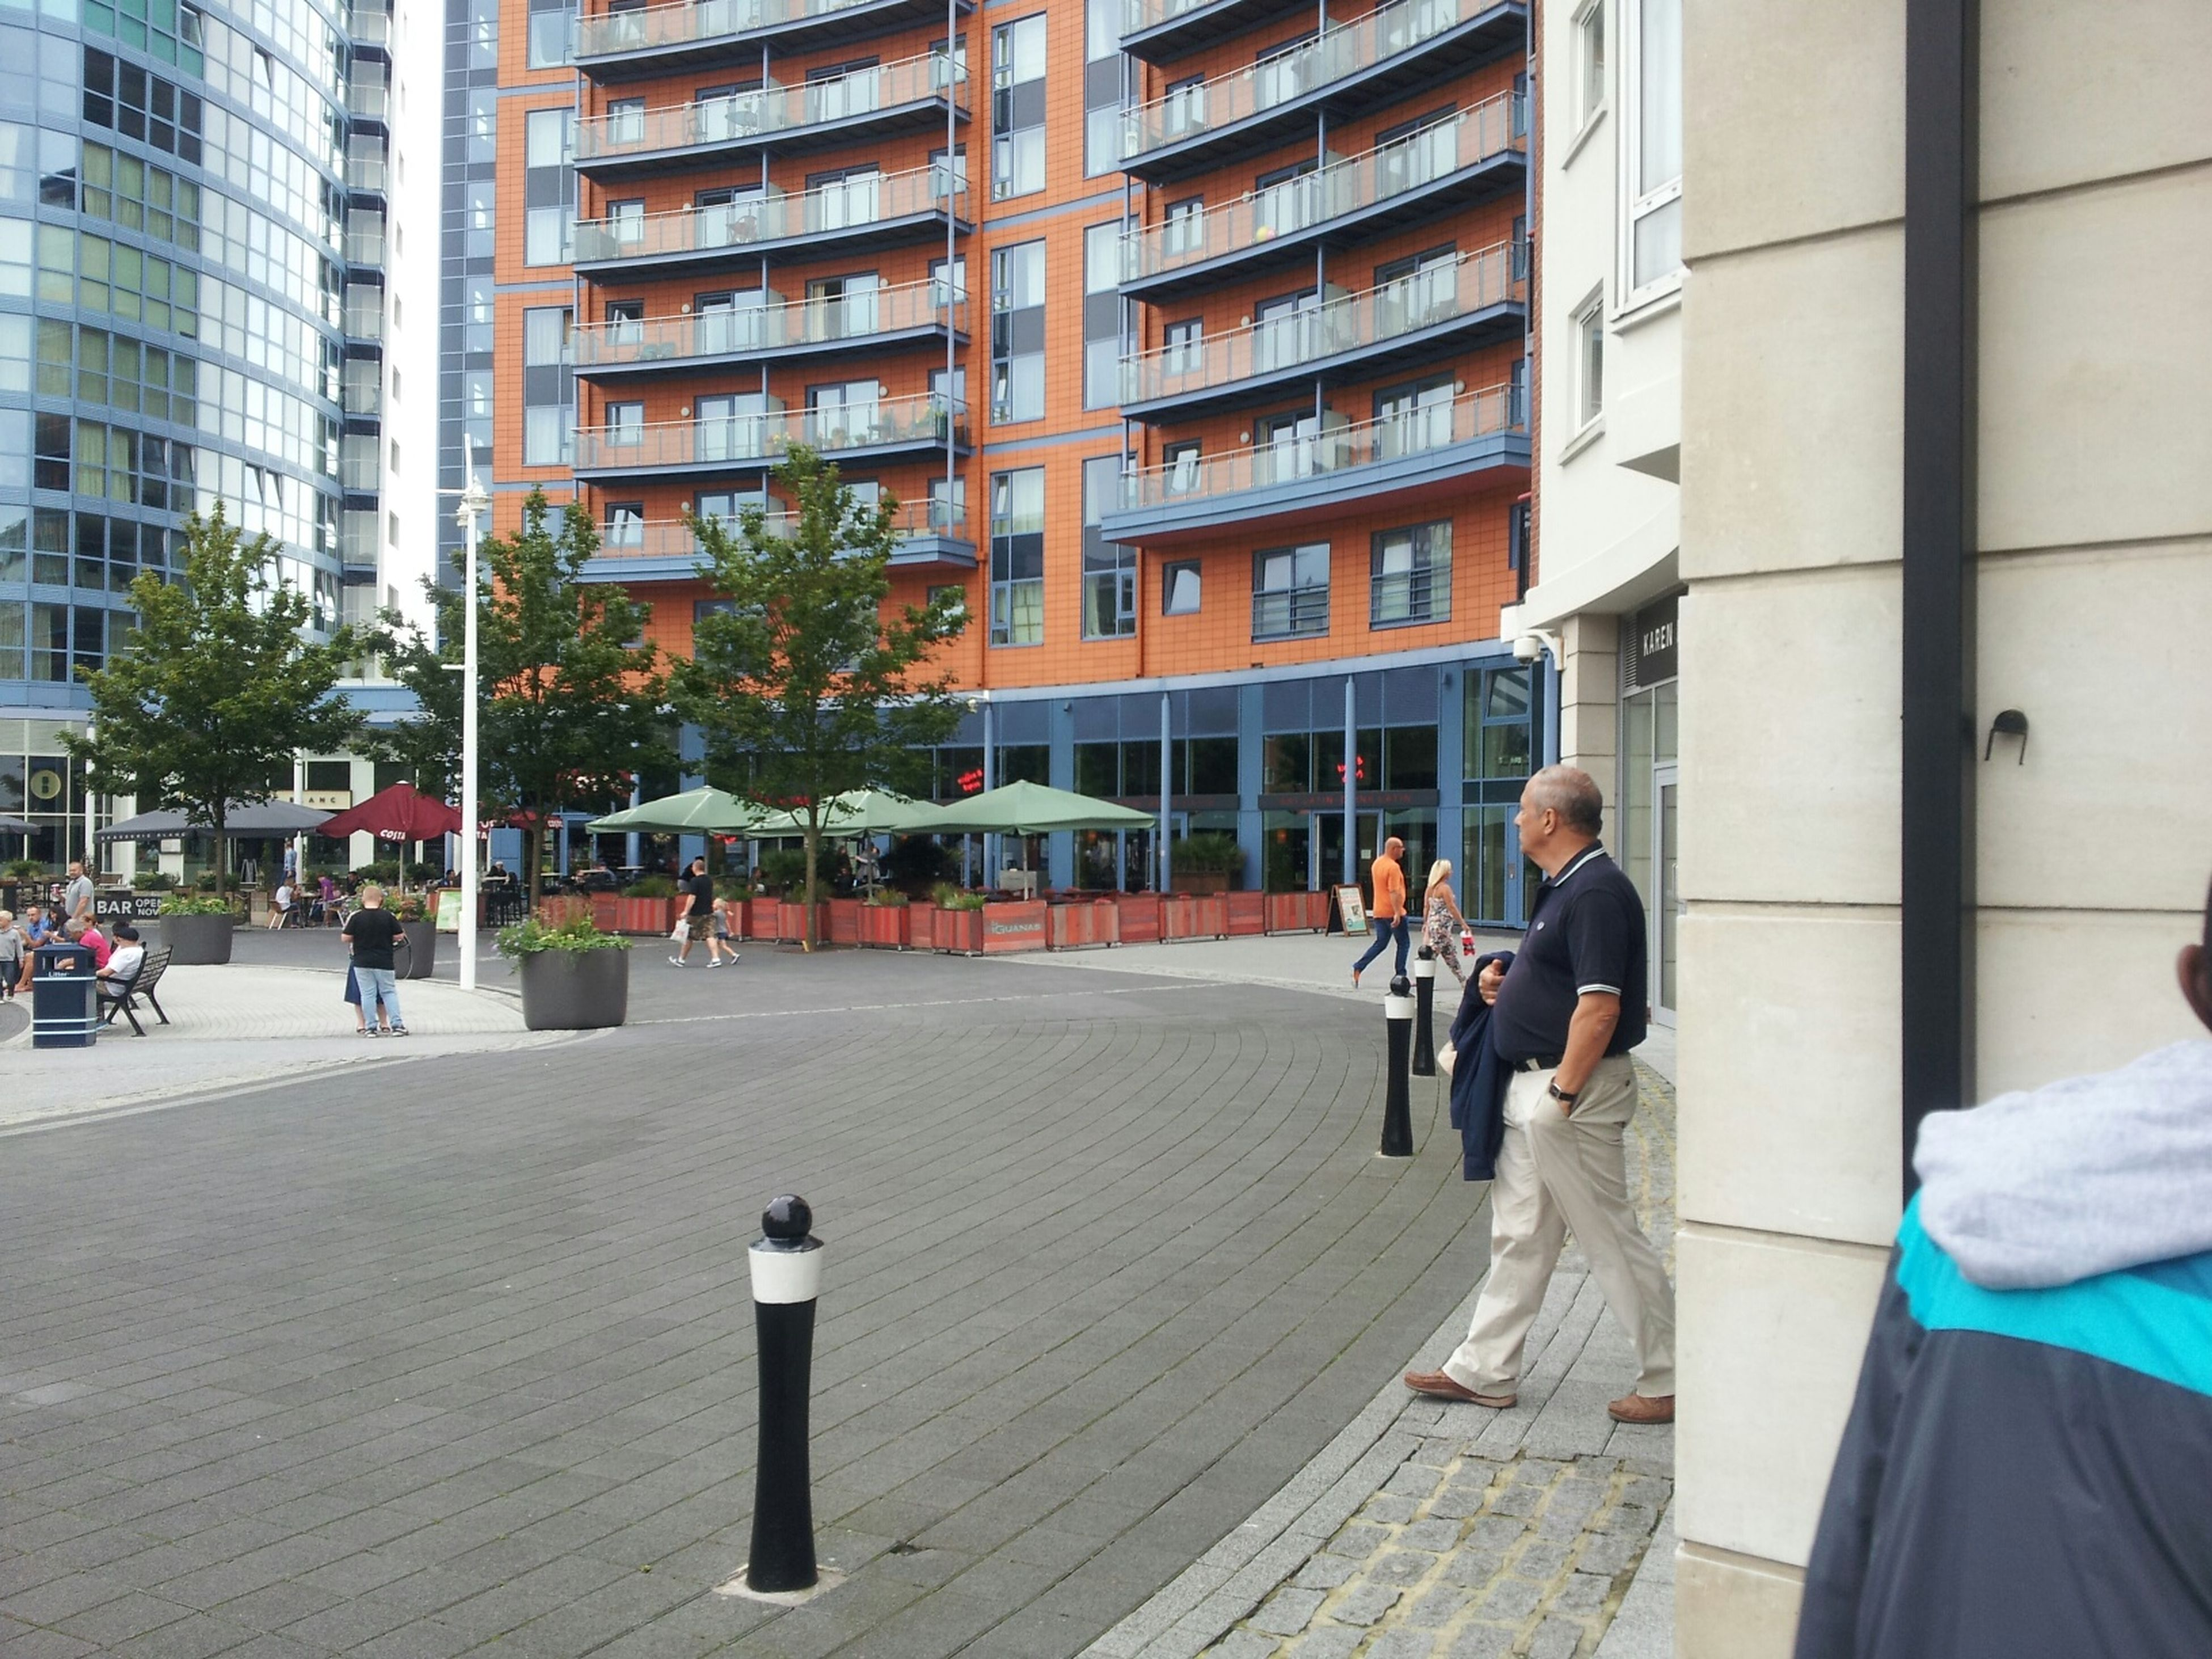 building exterior, architecture, built structure, city, men, walking, lifestyles, street, city life, person, leisure activity, building, large group of people, full length, outdoors, day, city street, road